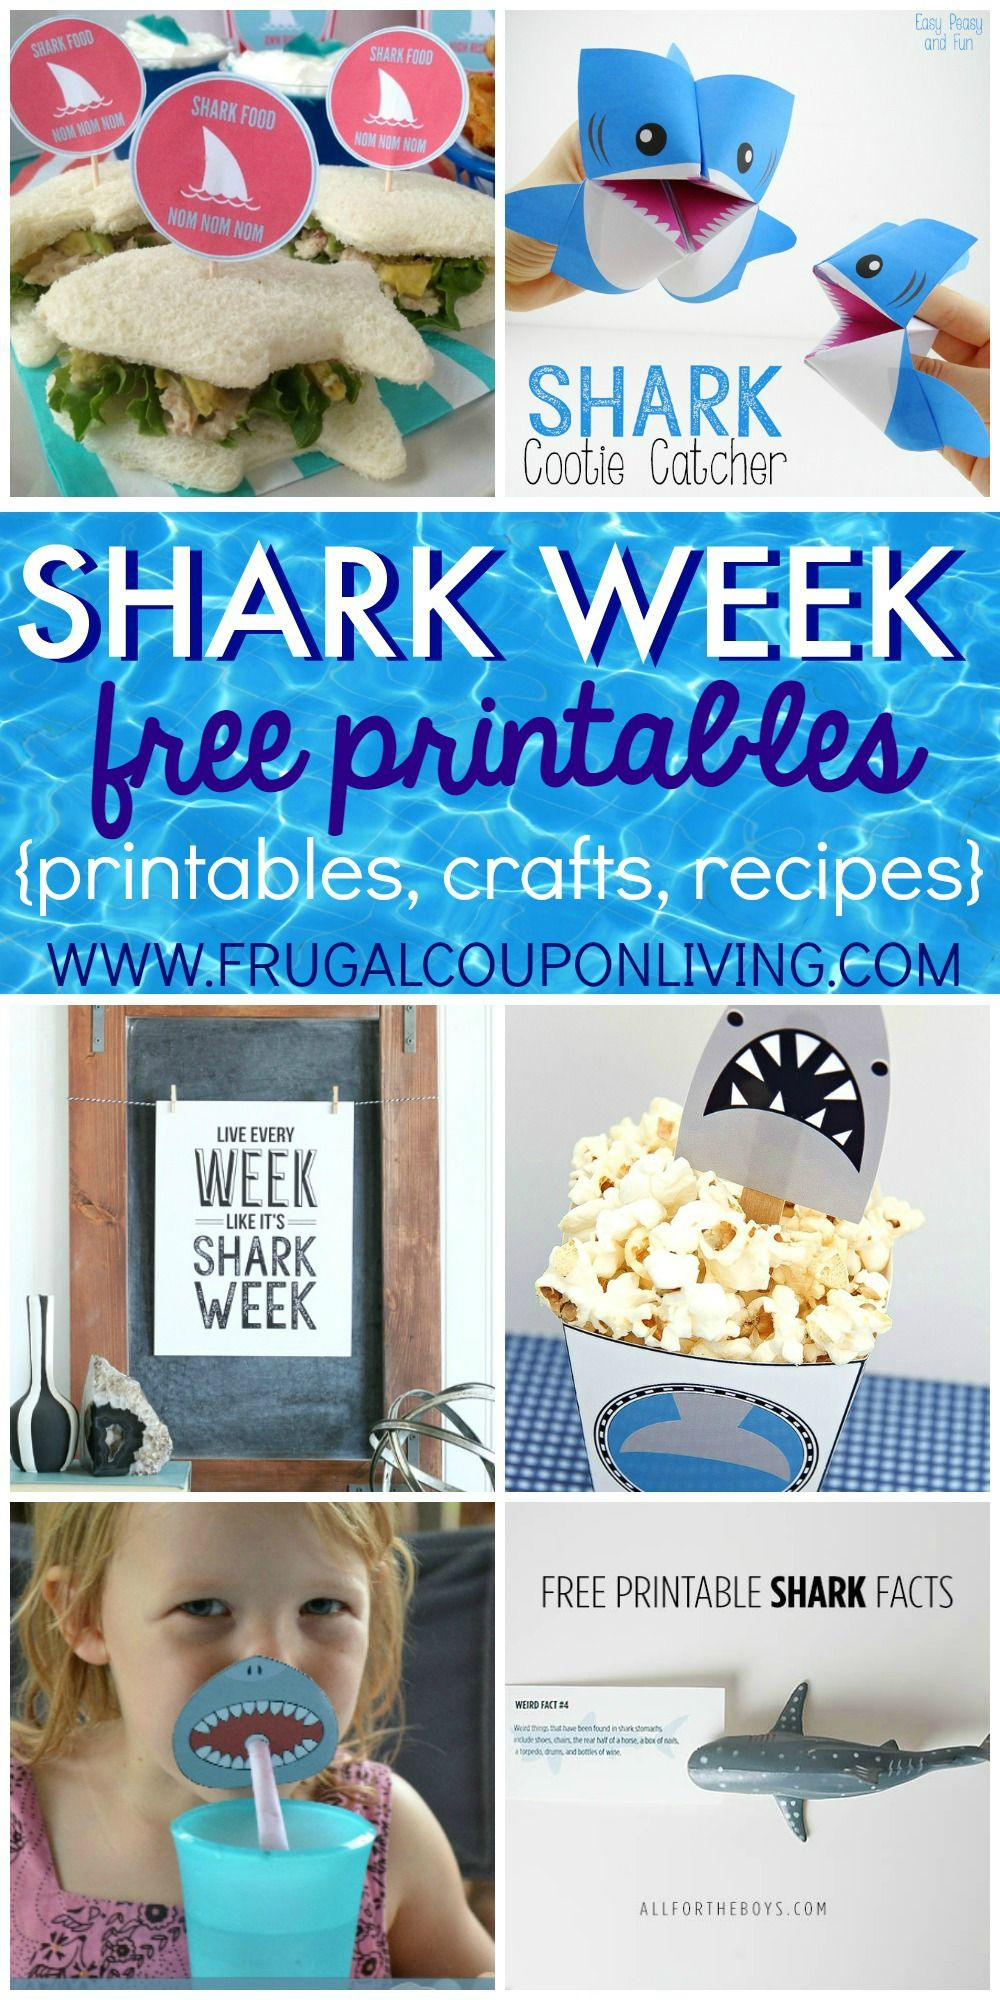 Shark Week Ideas for Kids